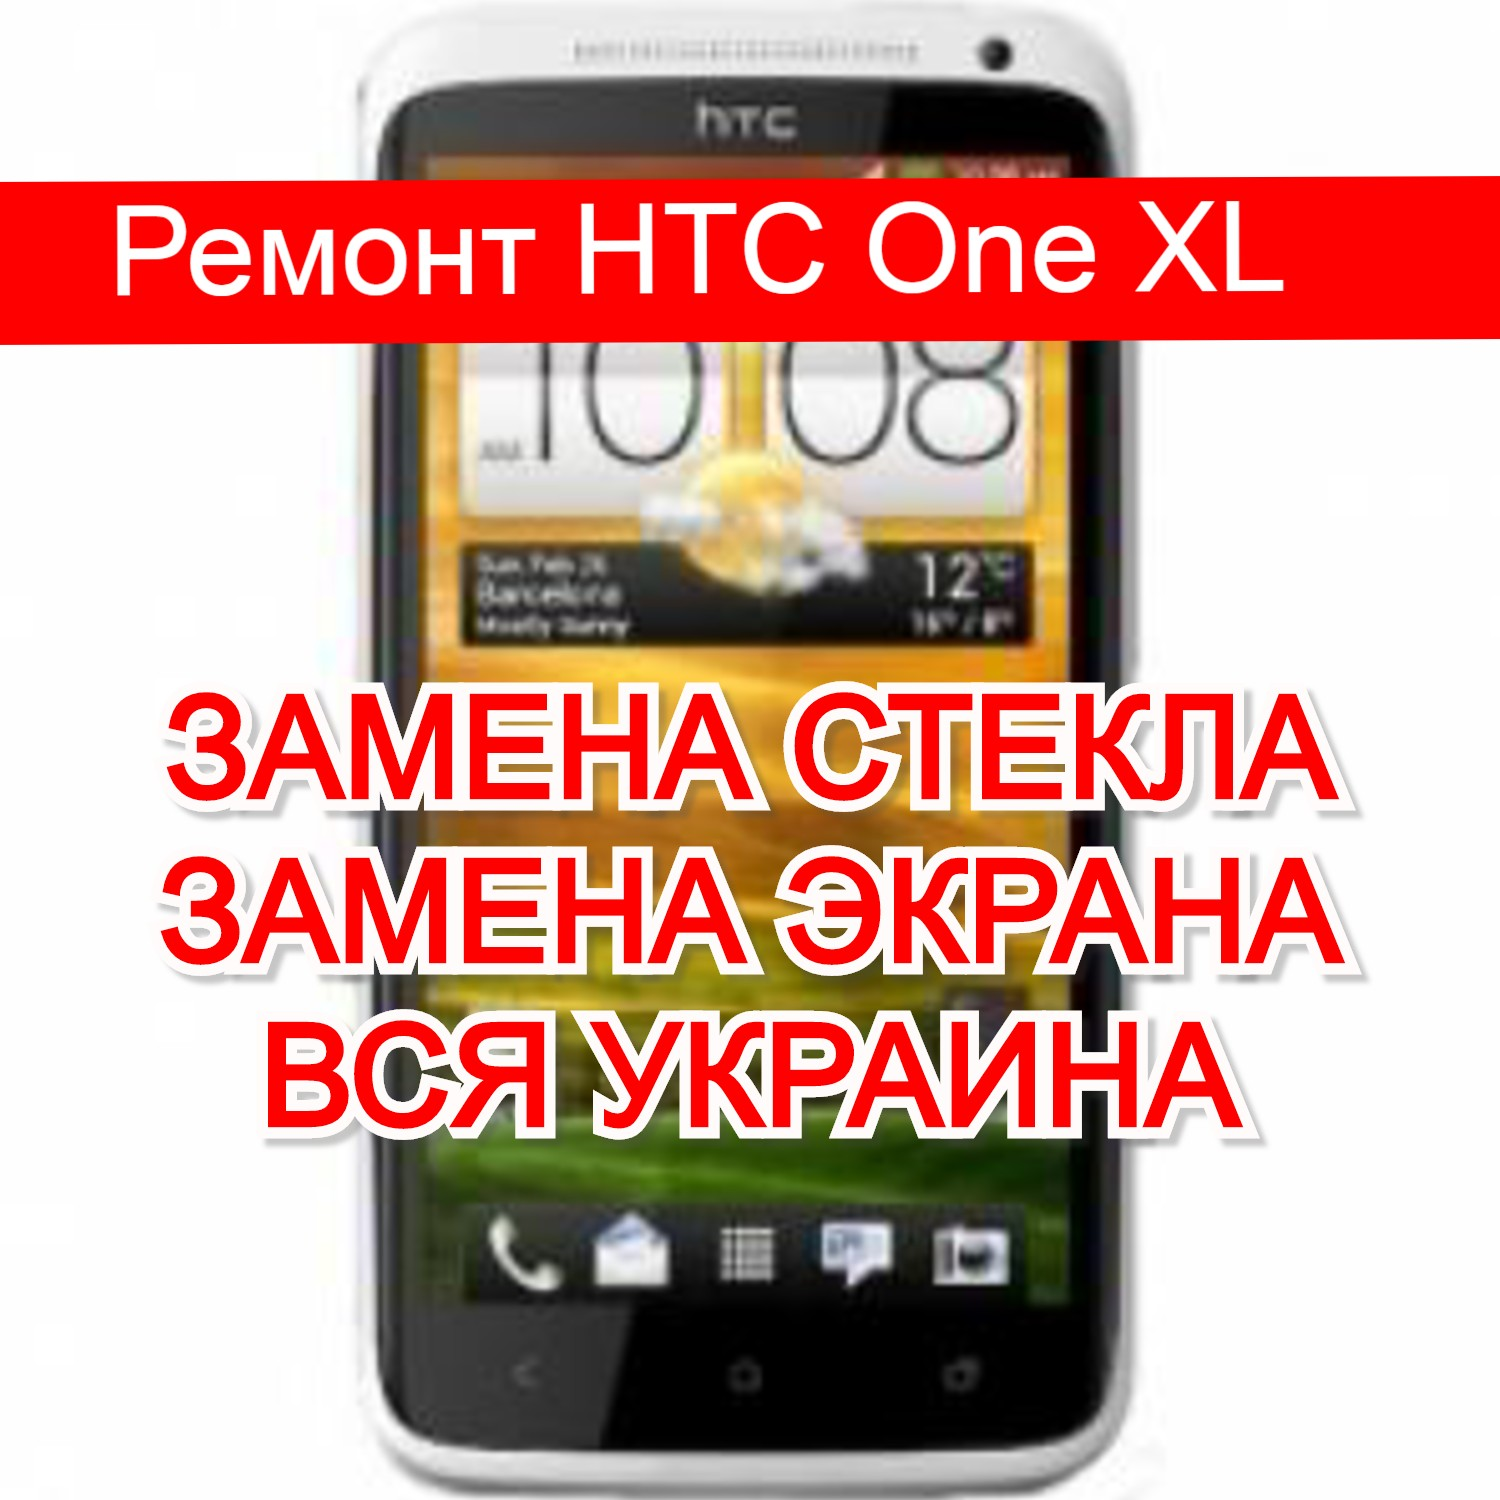 ремонт HTC One XL замена стекла и экрана